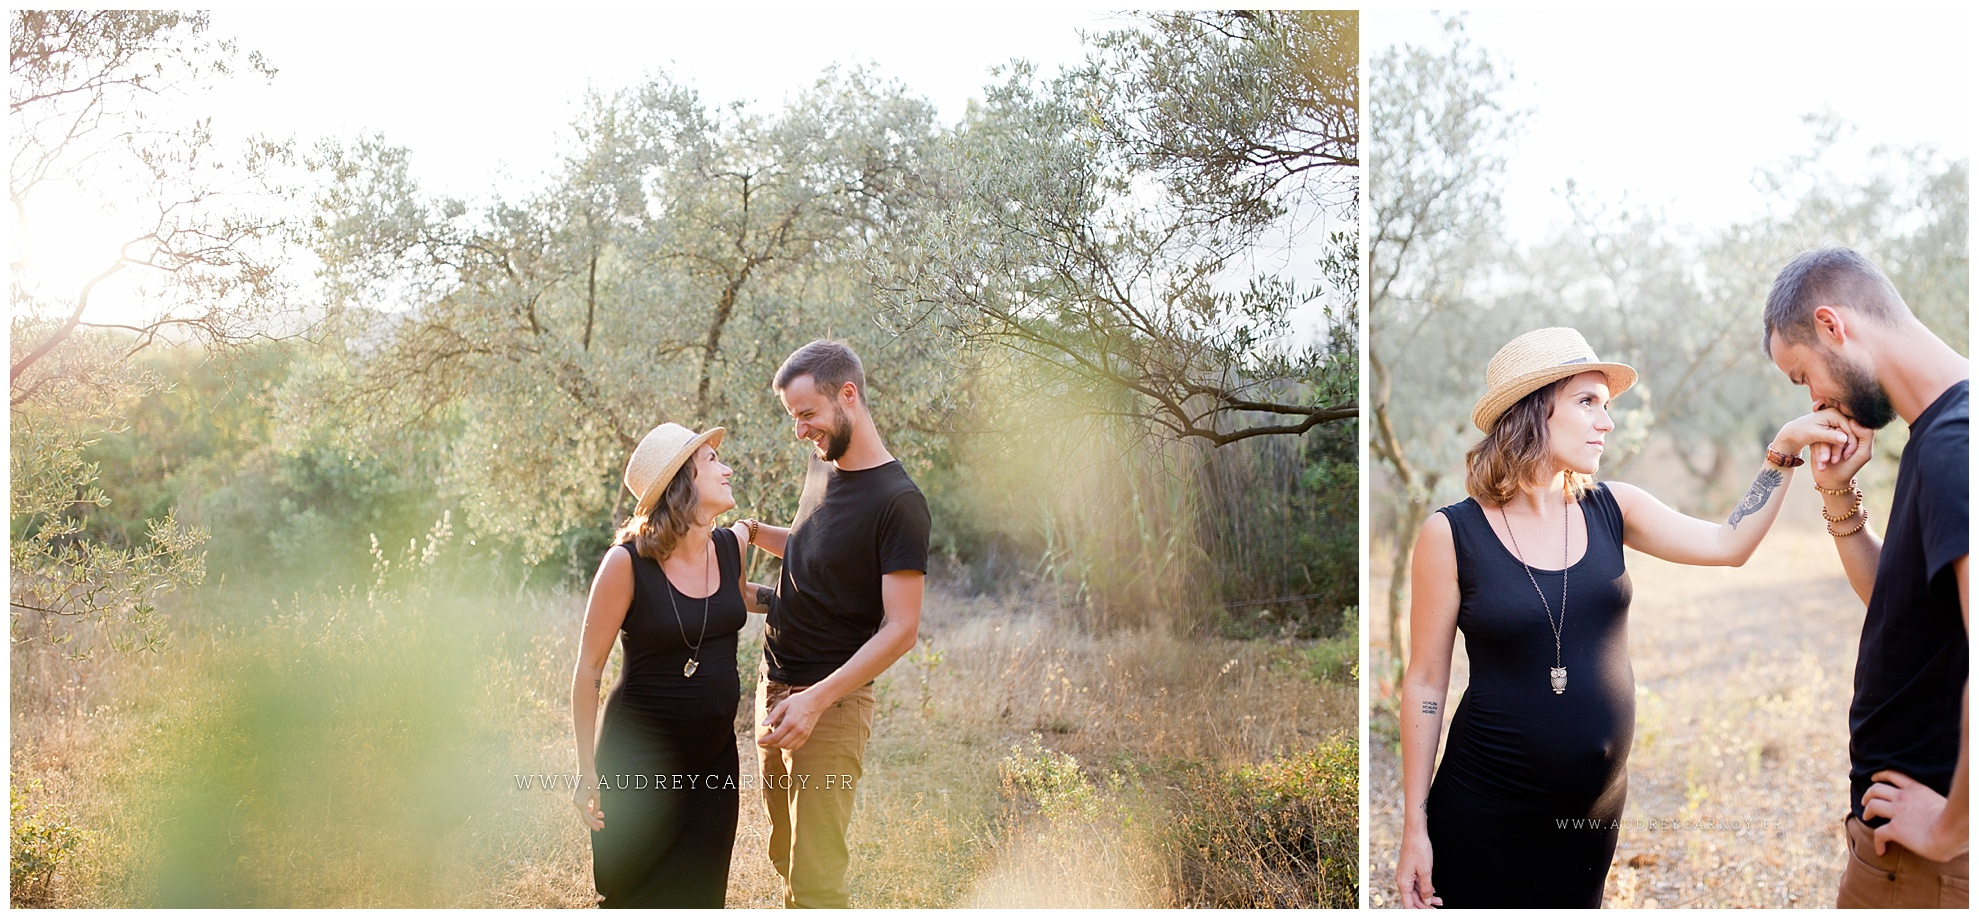 Seance grossesse Provence - Pertuis | Audrey & Jerome 5